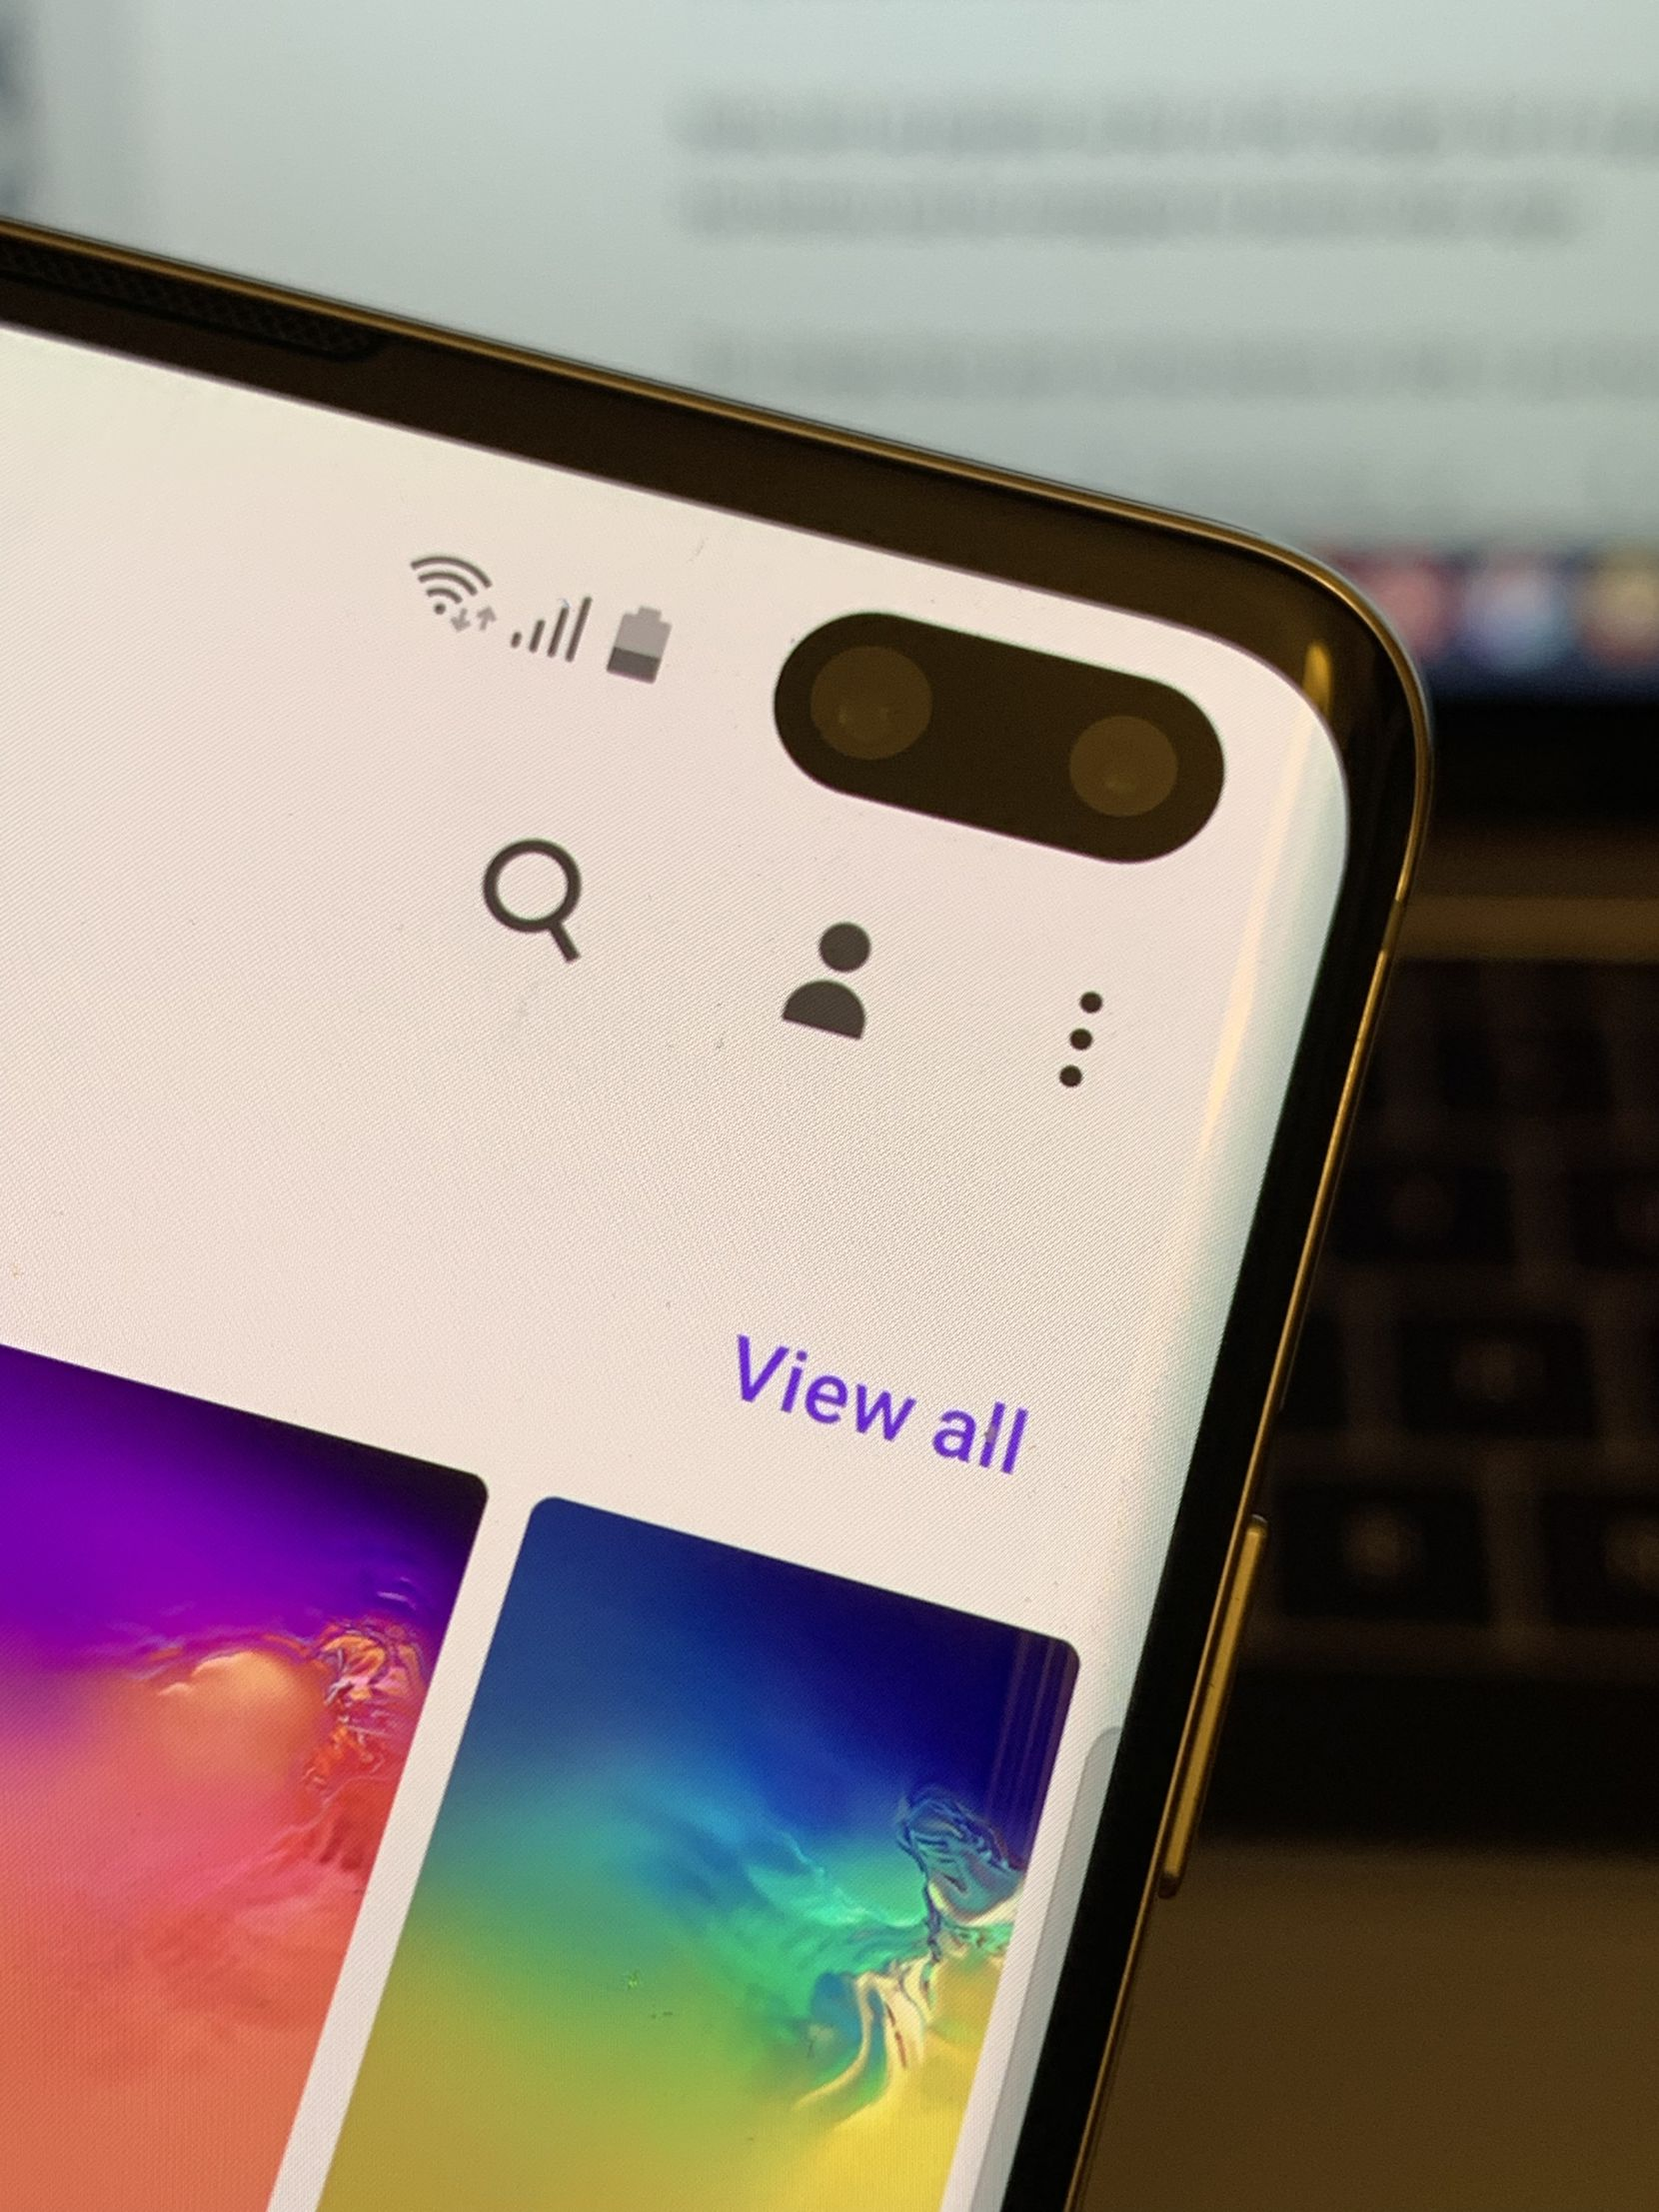 There are dual front cameras on the S10+